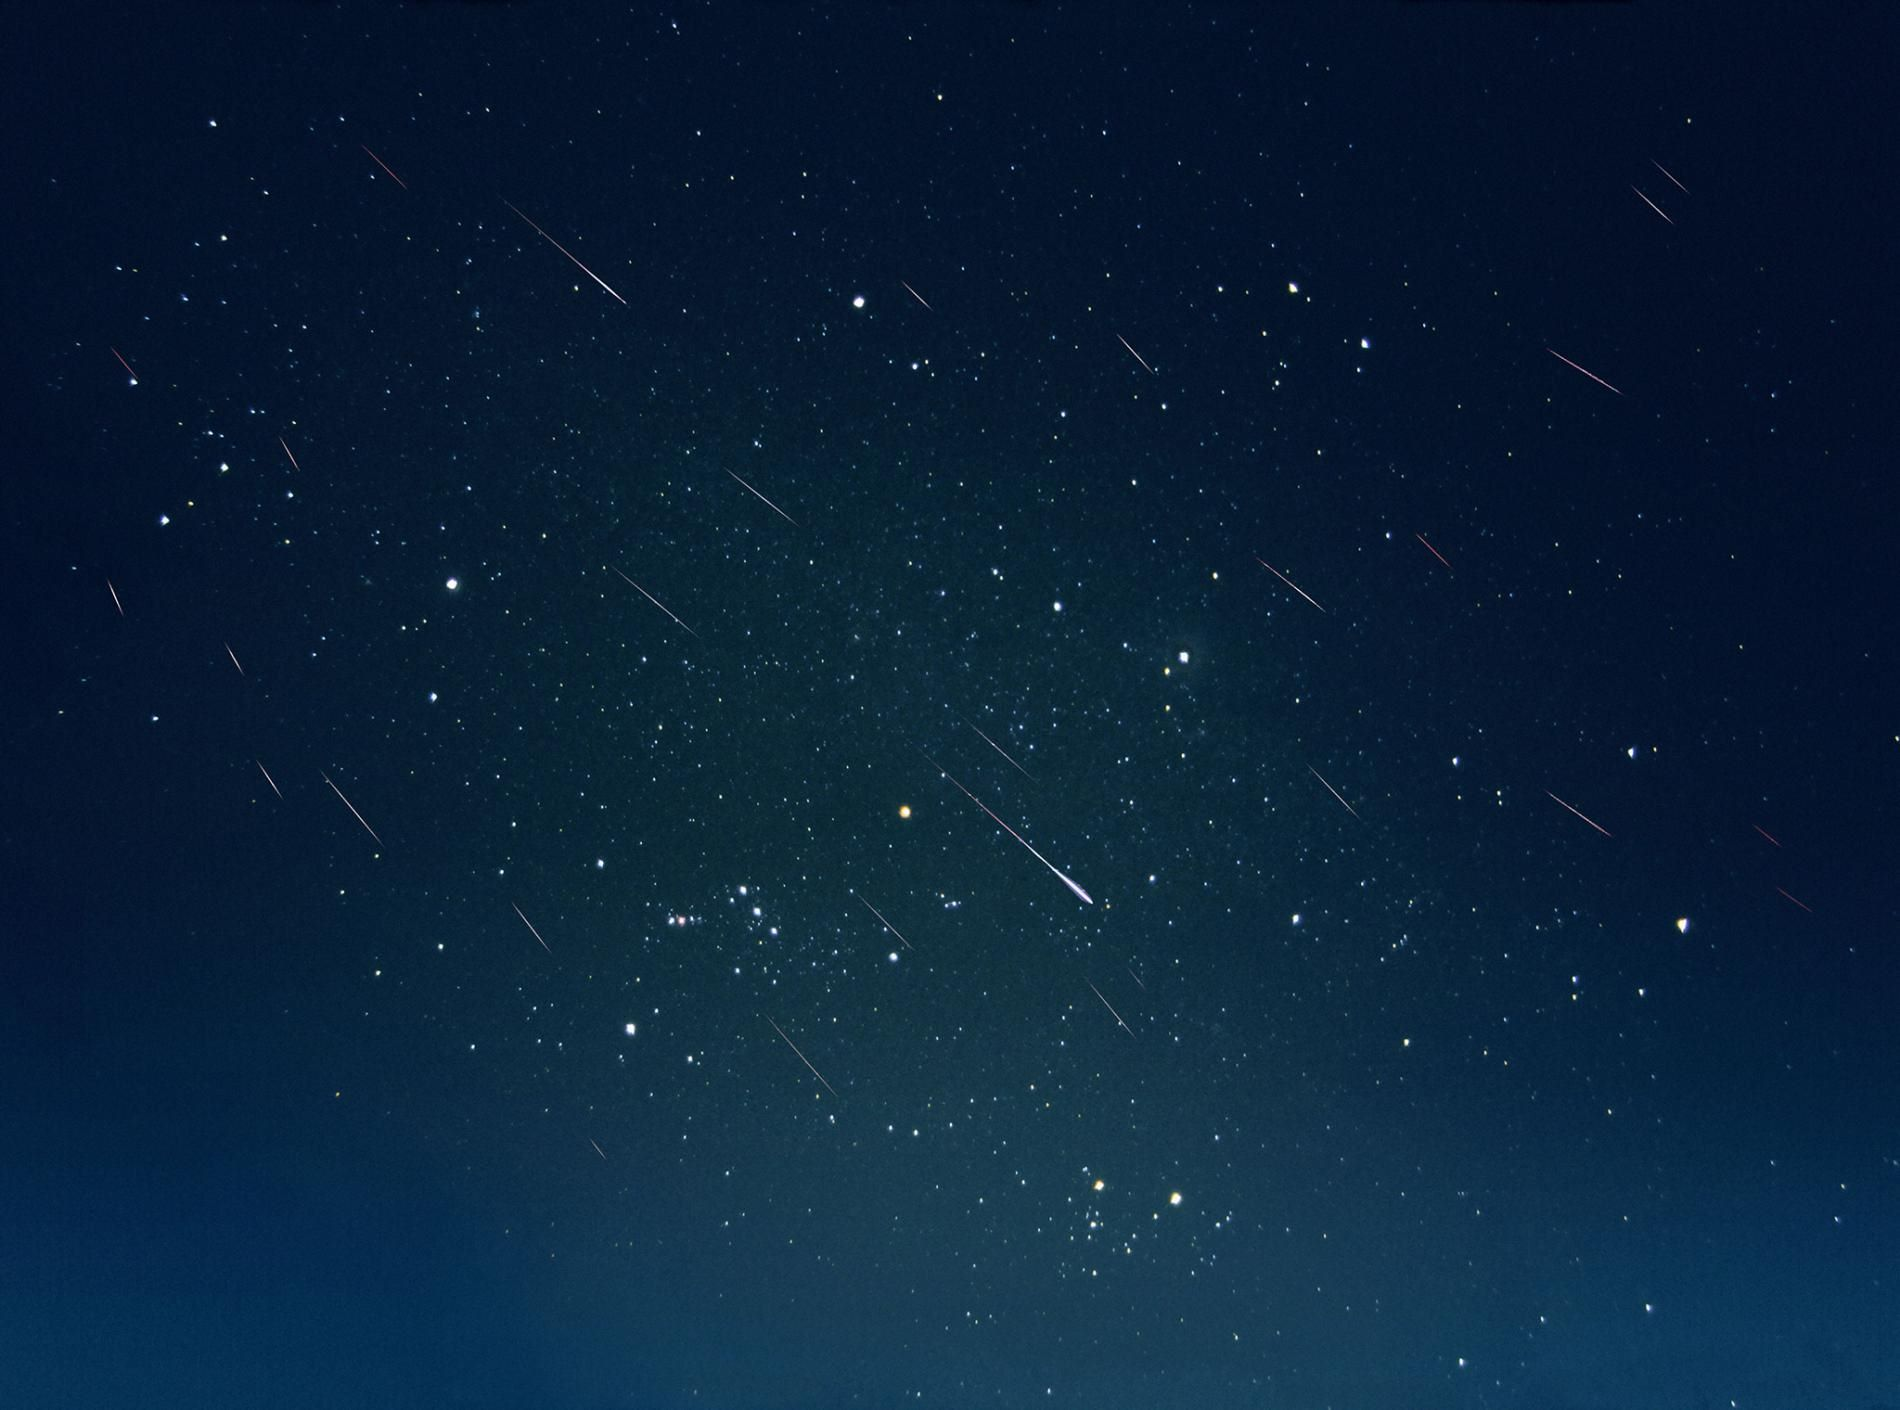 Meteor showers are best enjoyed with the naked eye—no need for binoculars or telescopes for this upcoming sky show. #flights & #hotels #Cruises #RentalCars #mexico #lajolla #nyc #sandiego #sky #clouds #beach #food #nature #sunset #night #love #harmonyoftheseas #funny #amazing #awesome #yum #cute #luxury #running #hiking #flying